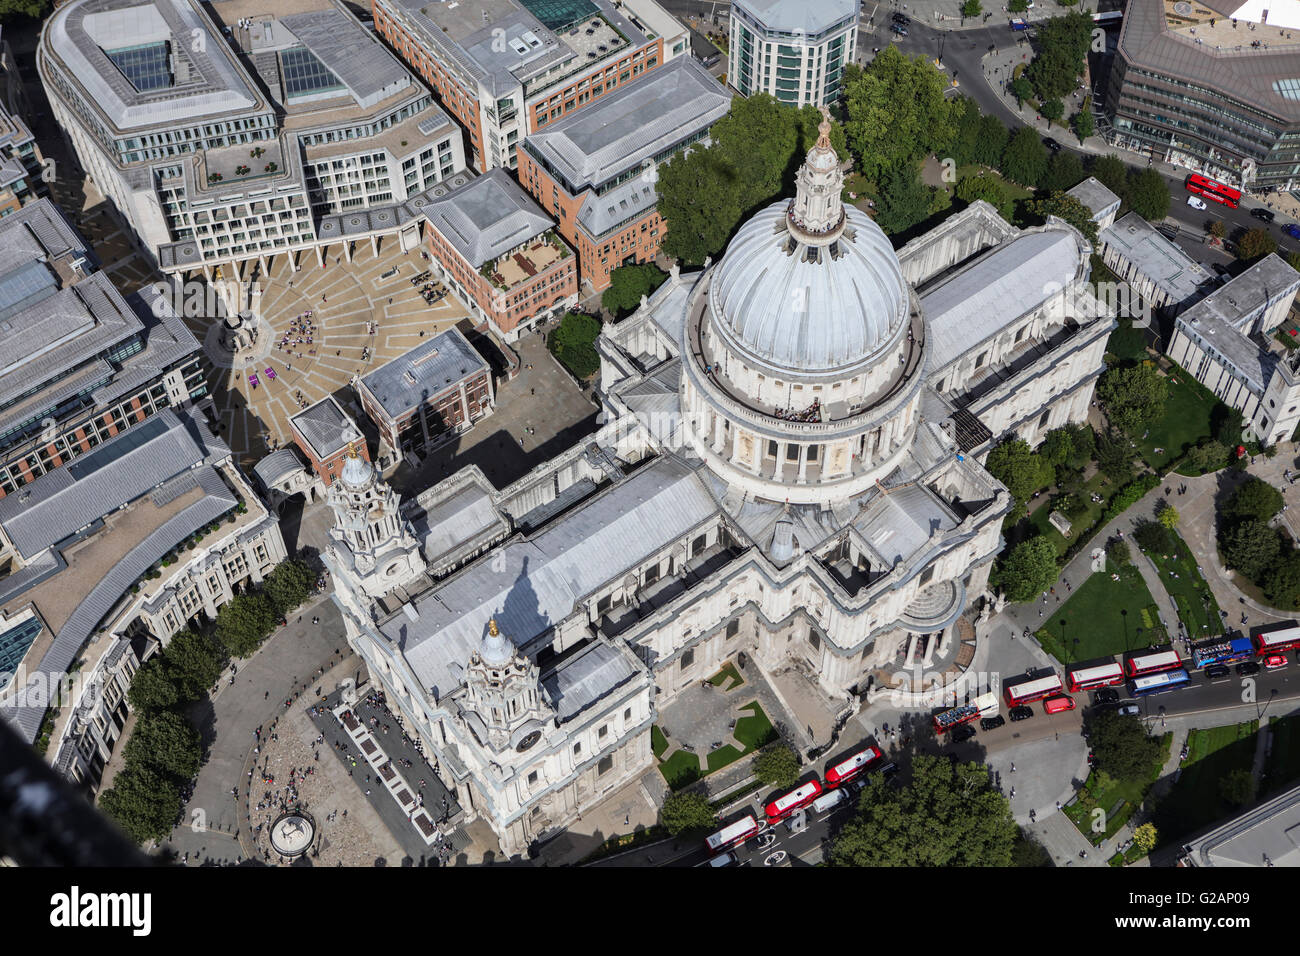 An aerial view of St Pauls Cathedral, London - Stock Image